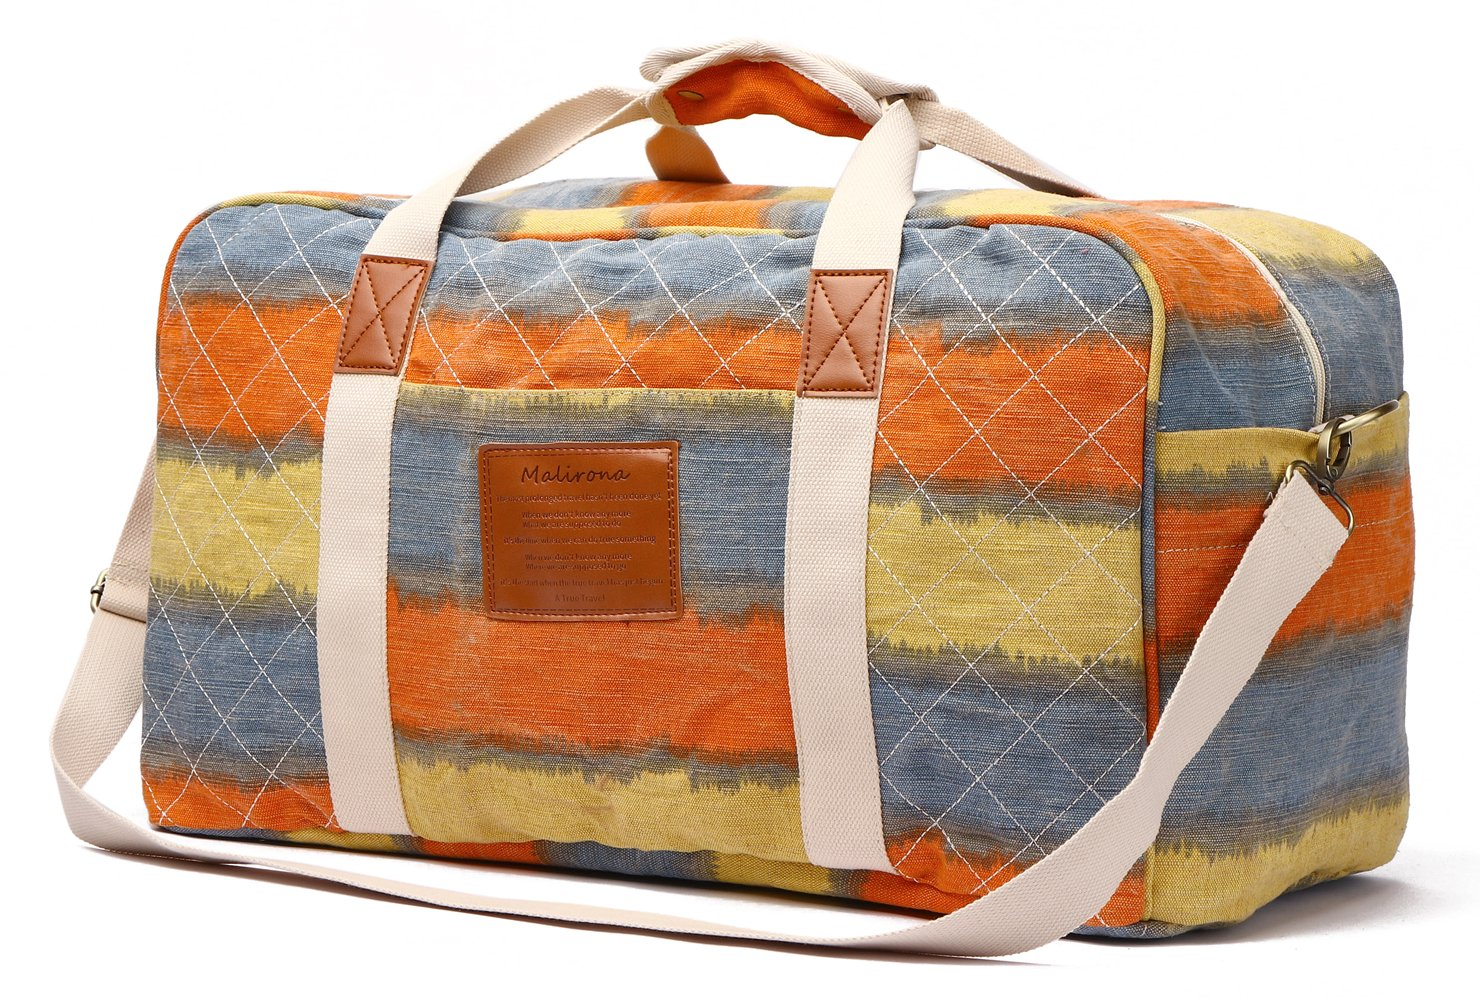 Malirona Canvas Weekender Bag Travel Duffel Bag for Weekend Overnight Trip SD033-Flowers